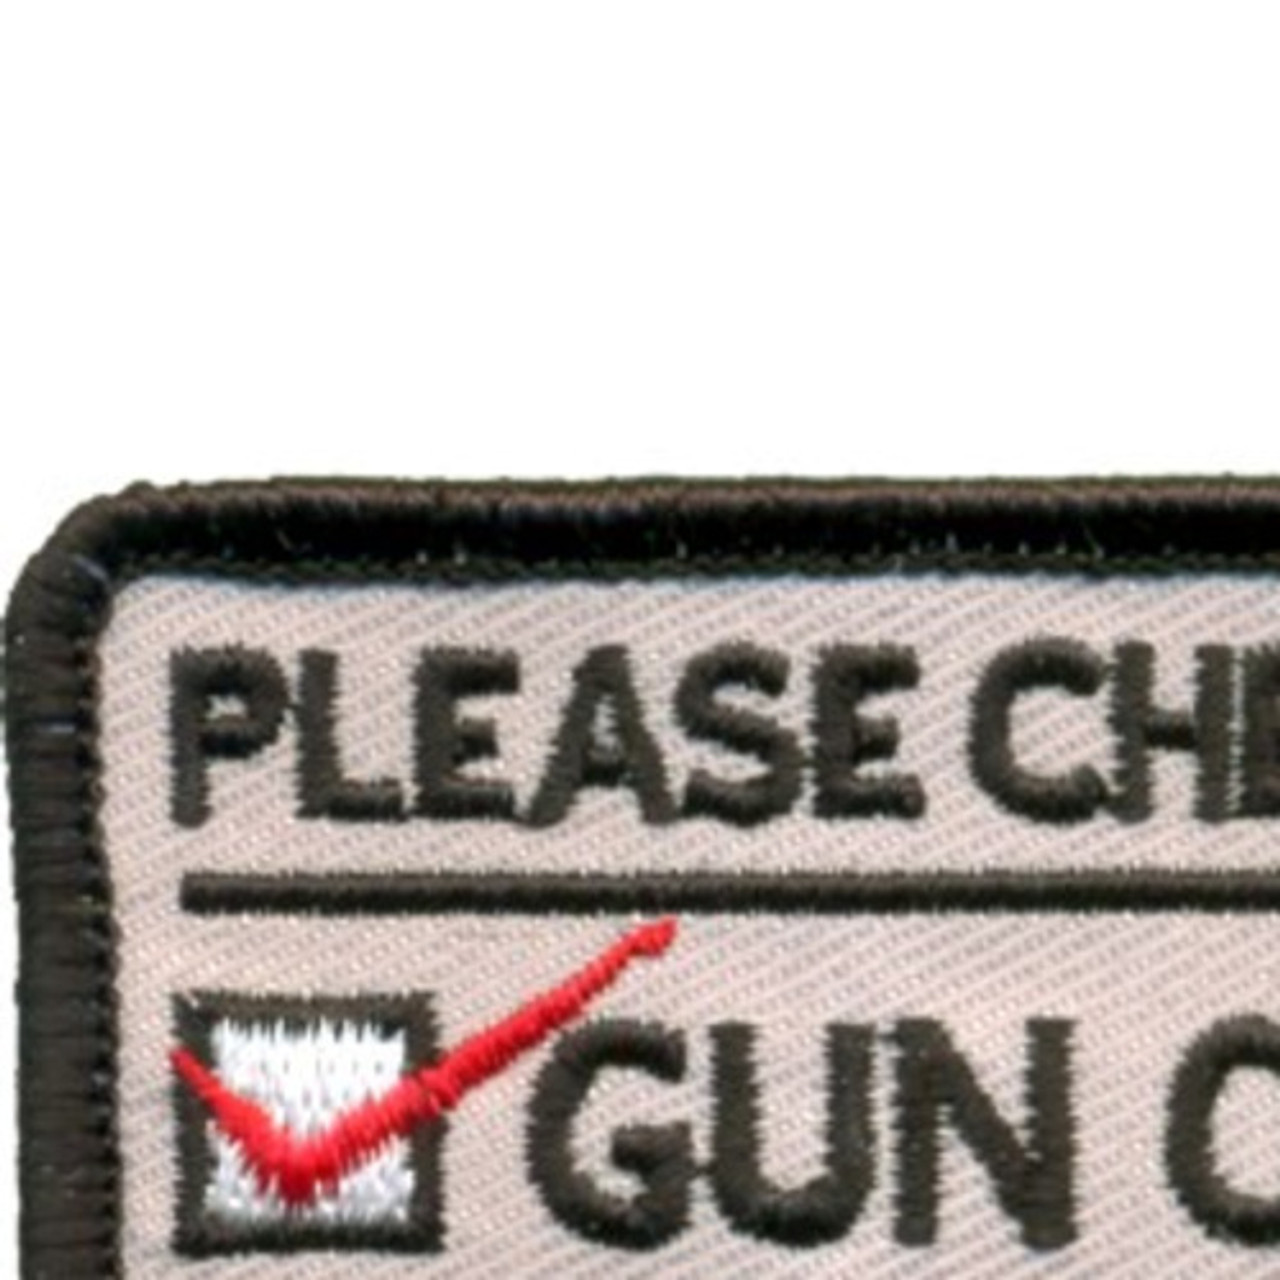 Gun Owner Or Victim Patch